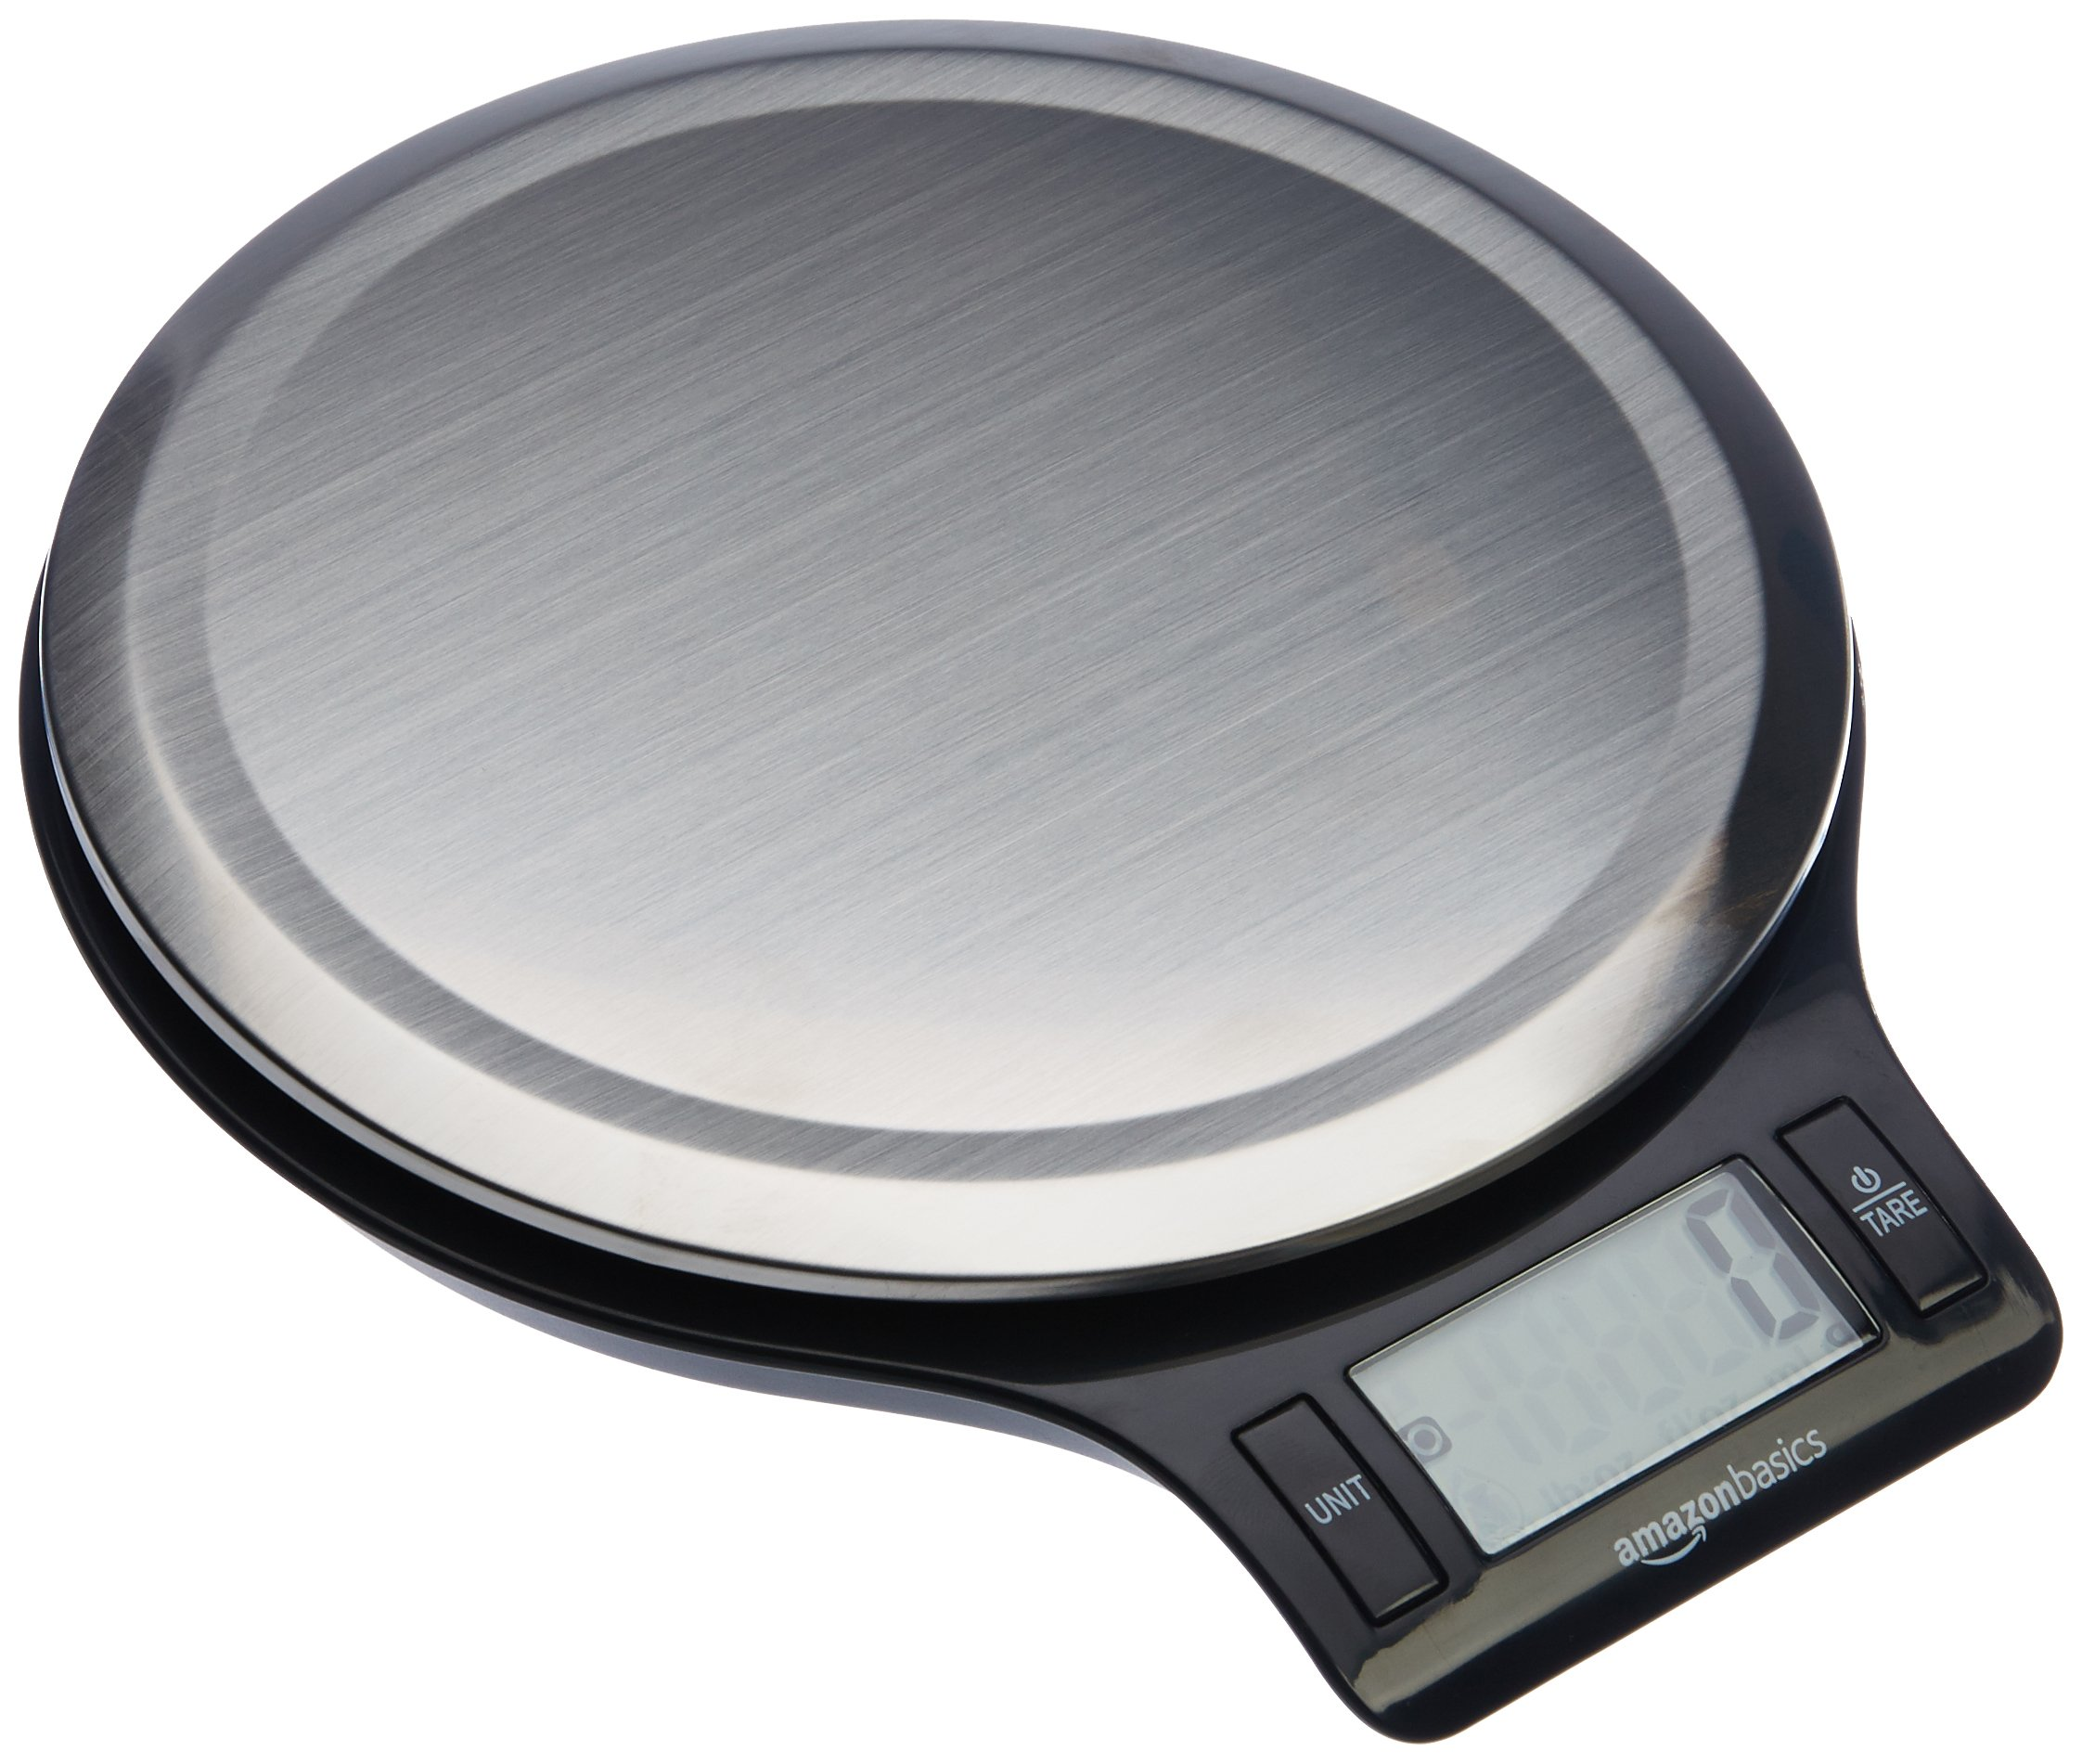 AmazonBasics Stainless Steel Digital Kitchen Scale with LCD Display, Batteries Included by AmazonBasics